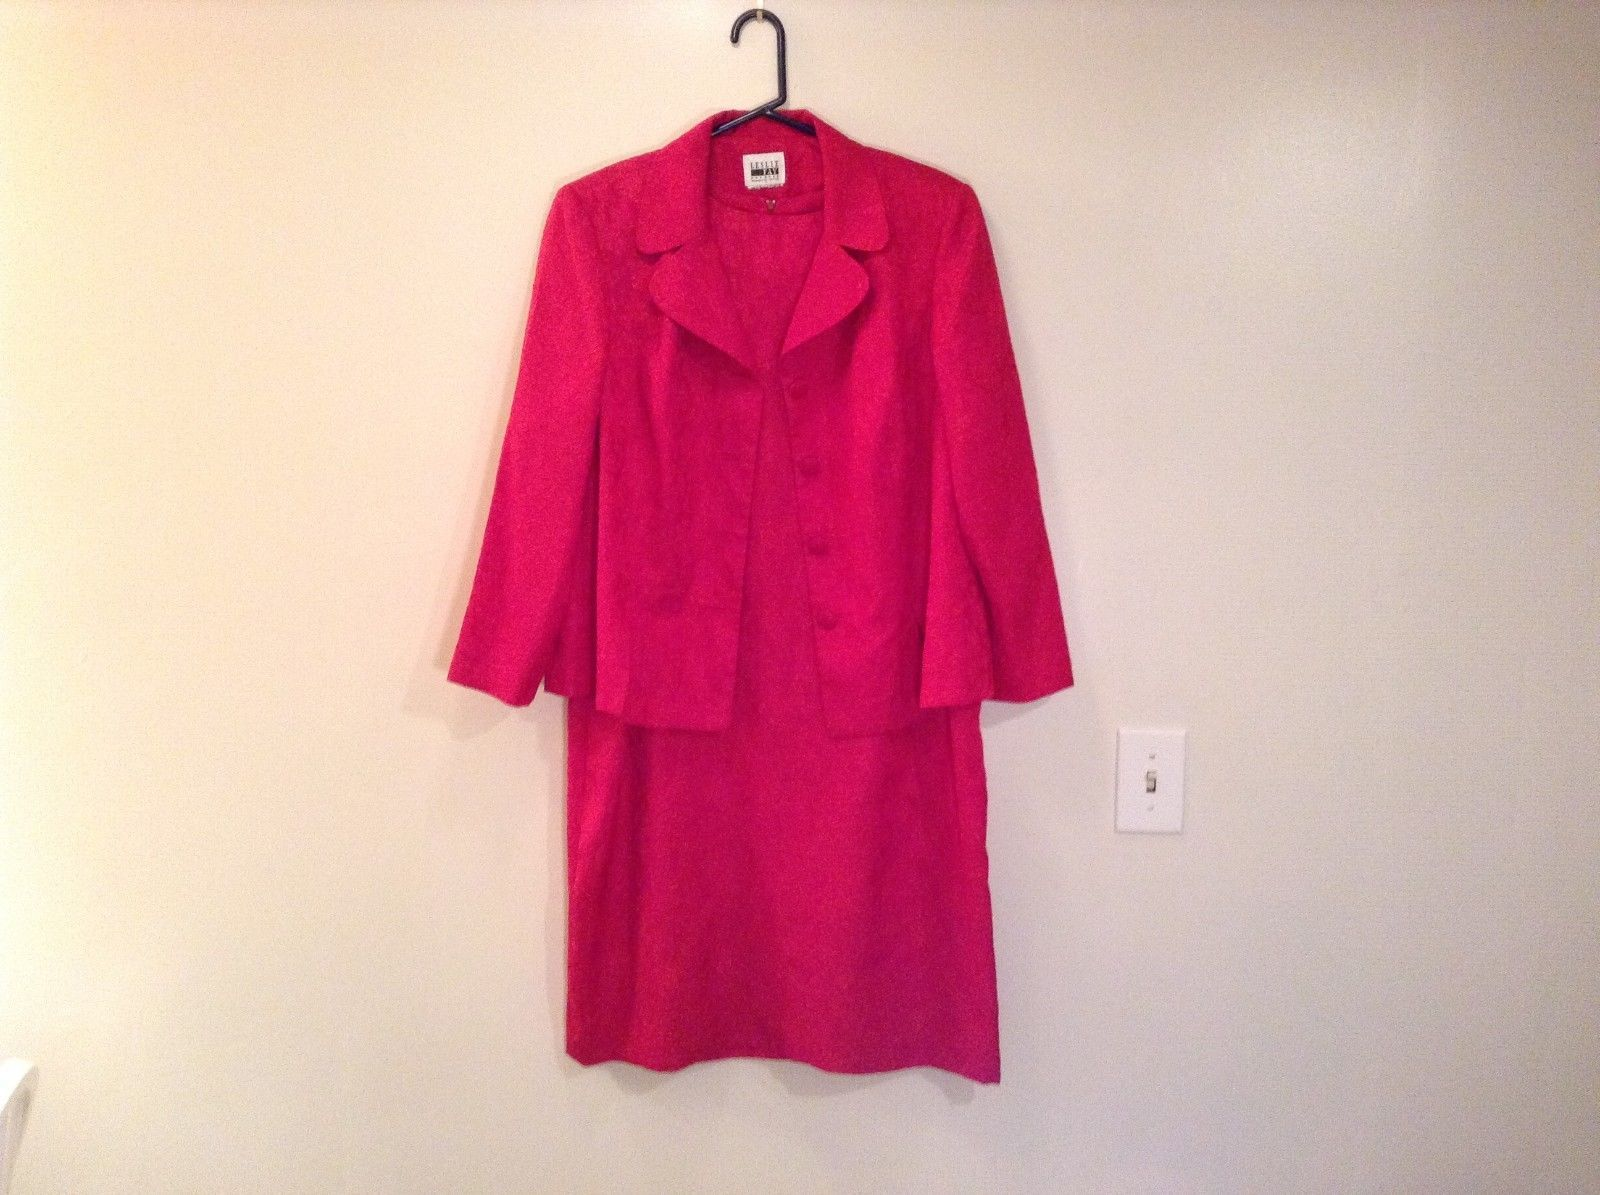 Leslie Fay Petite Red Dress and Jacket Suit Unlined Zipper Closure Back of Dress